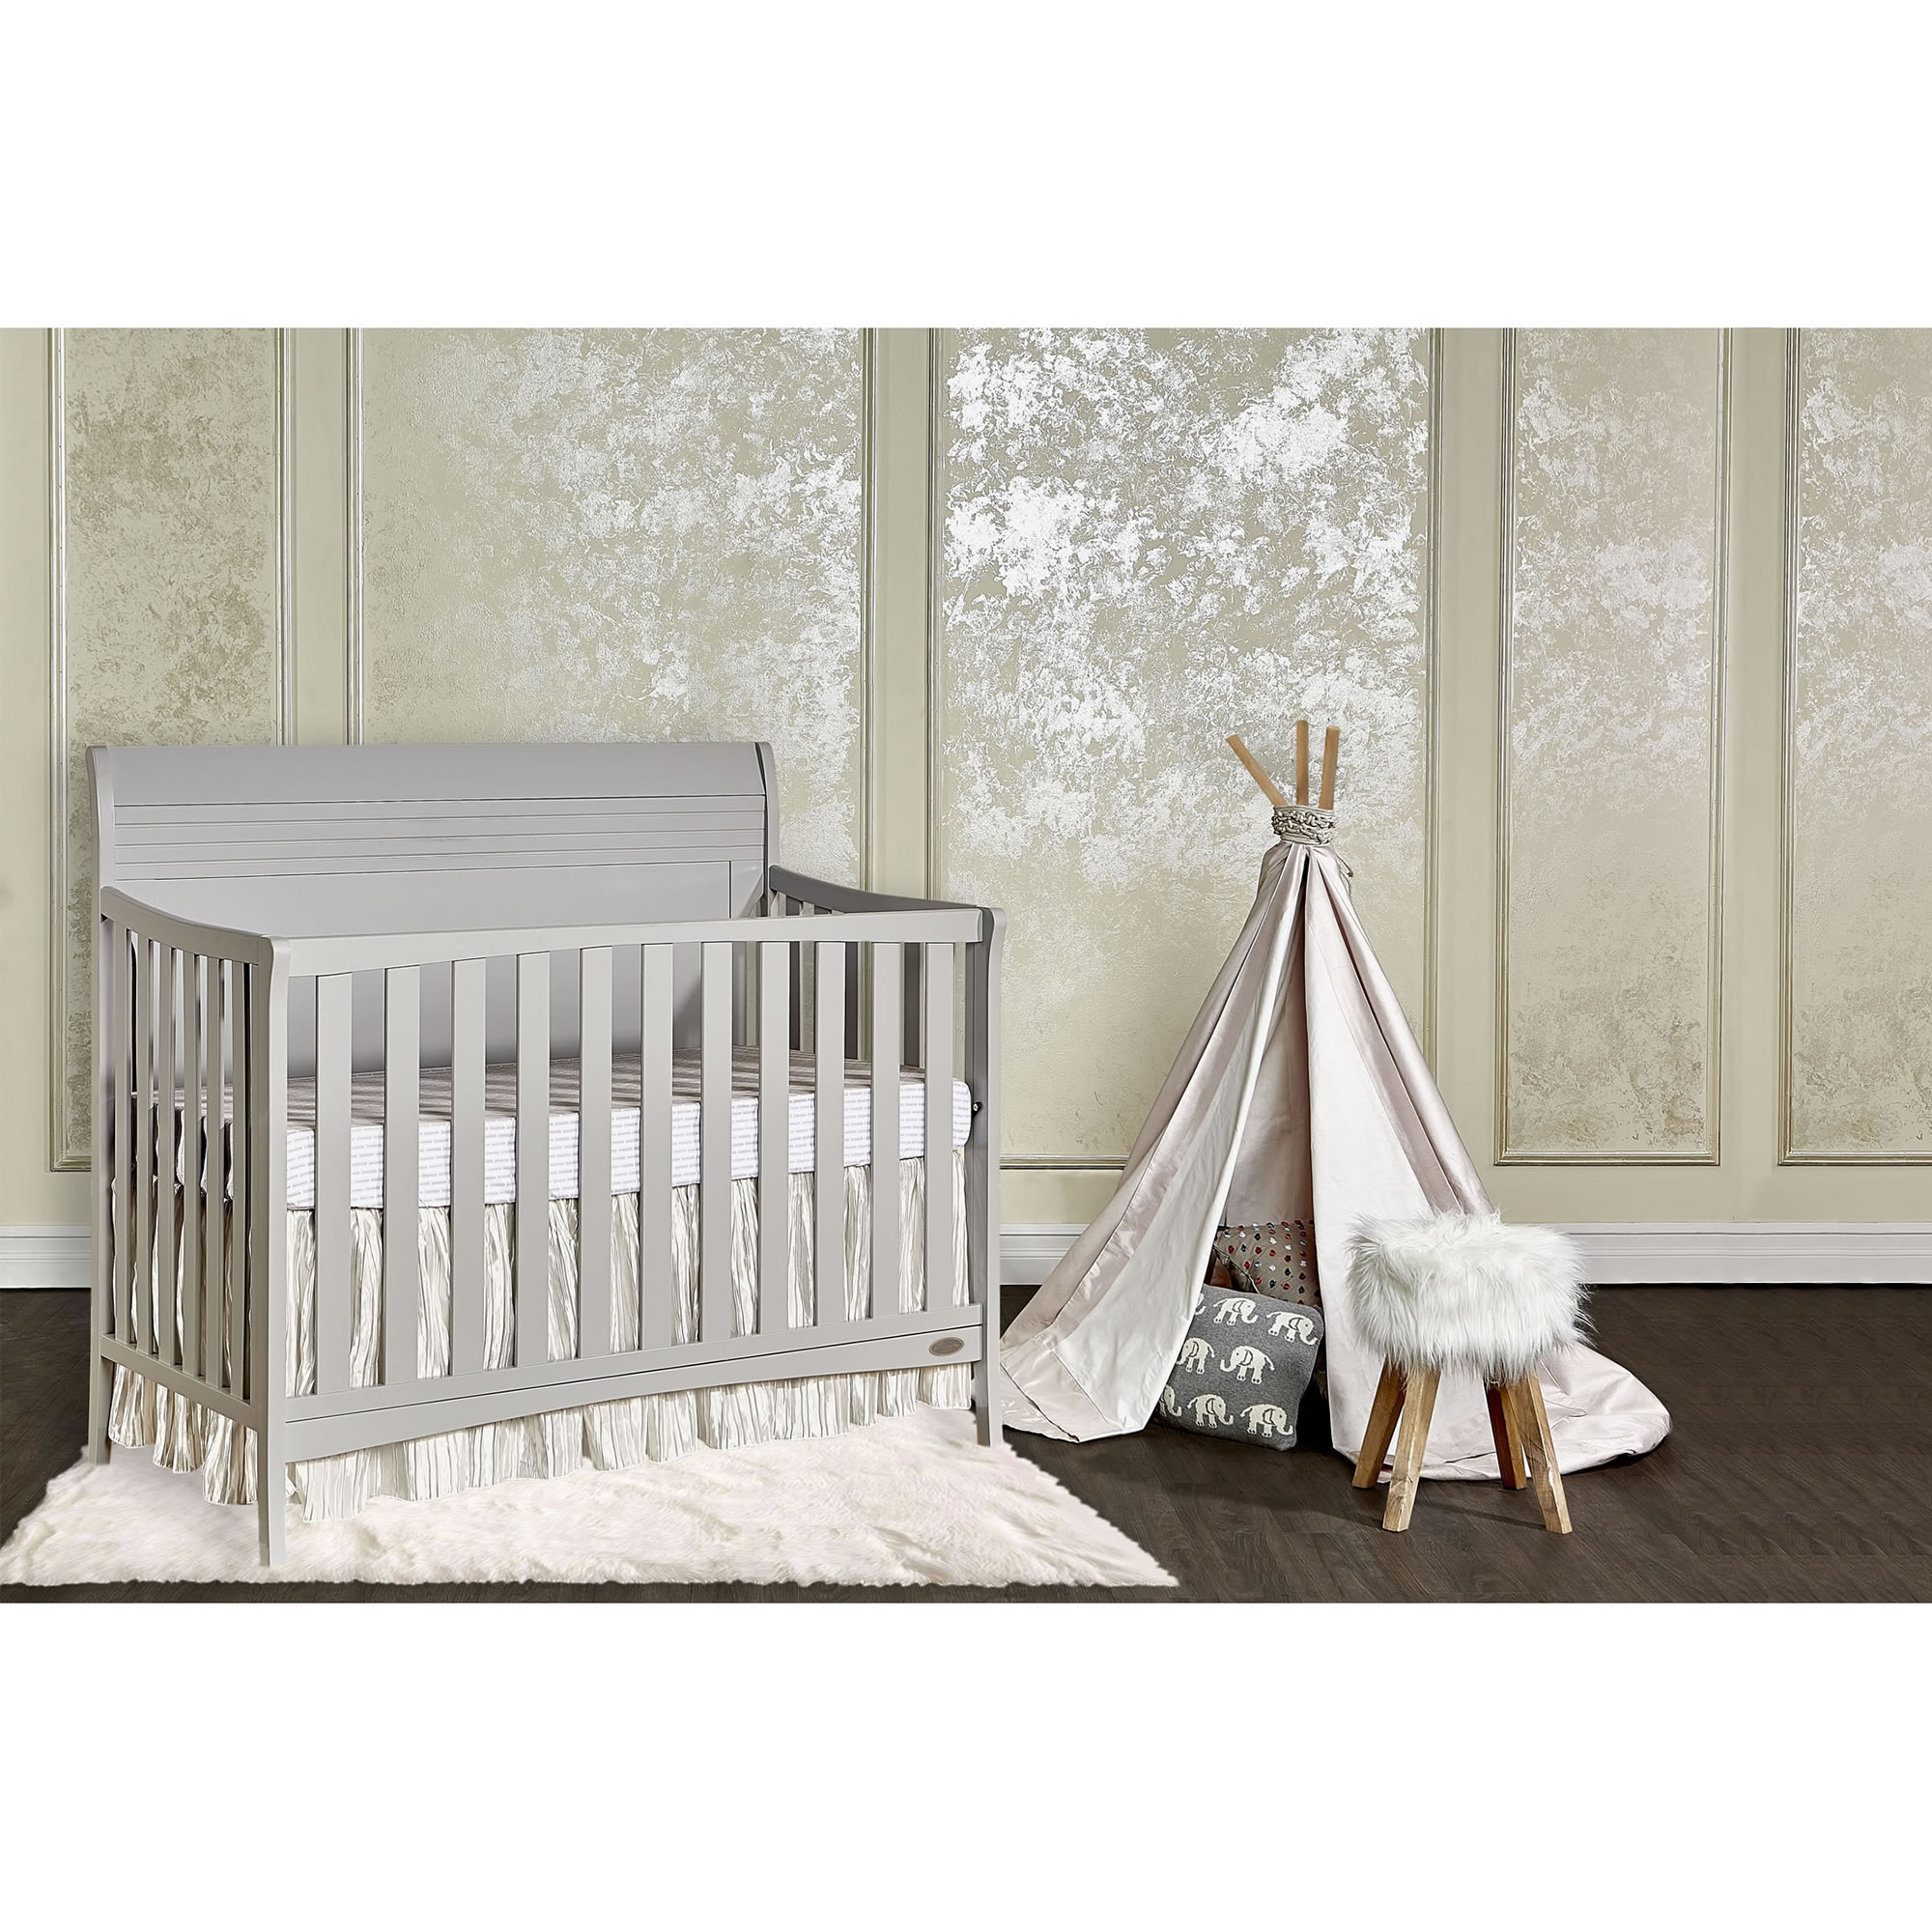 751_PG_Bailey_5_In_1_Convertible_Crib_RS